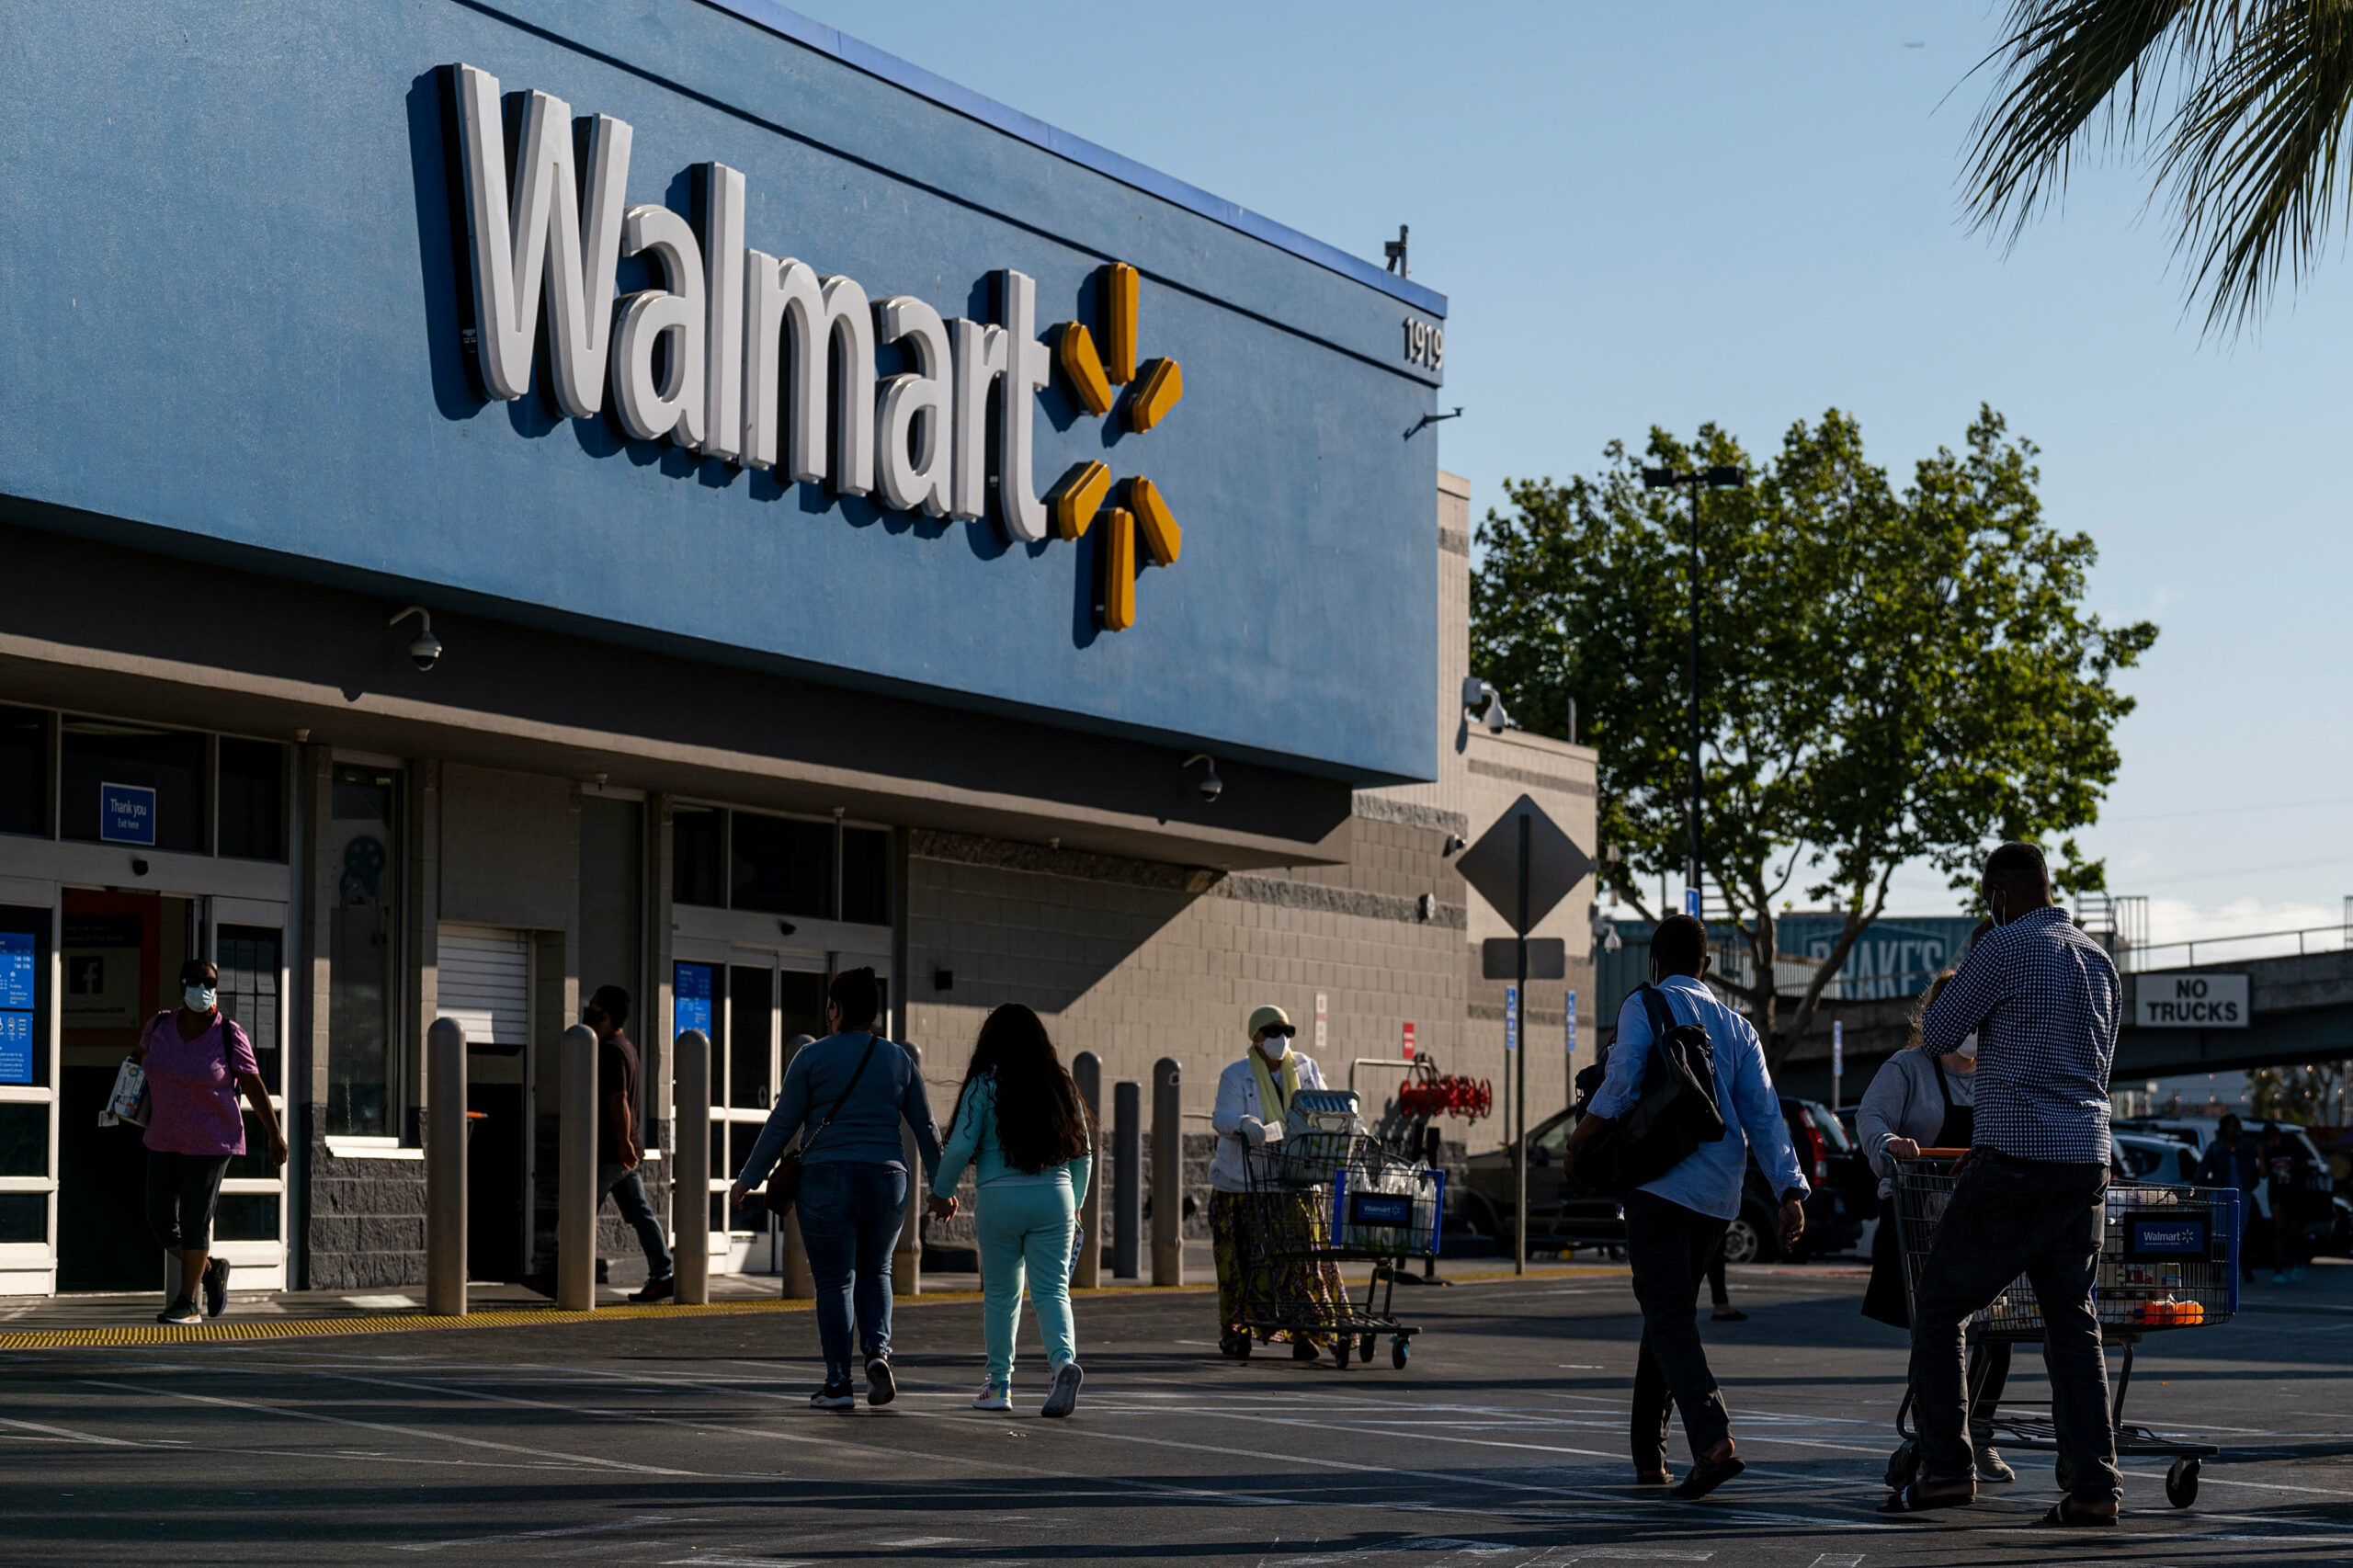 Walmart to promote e-commerce expertise to smaller retailers